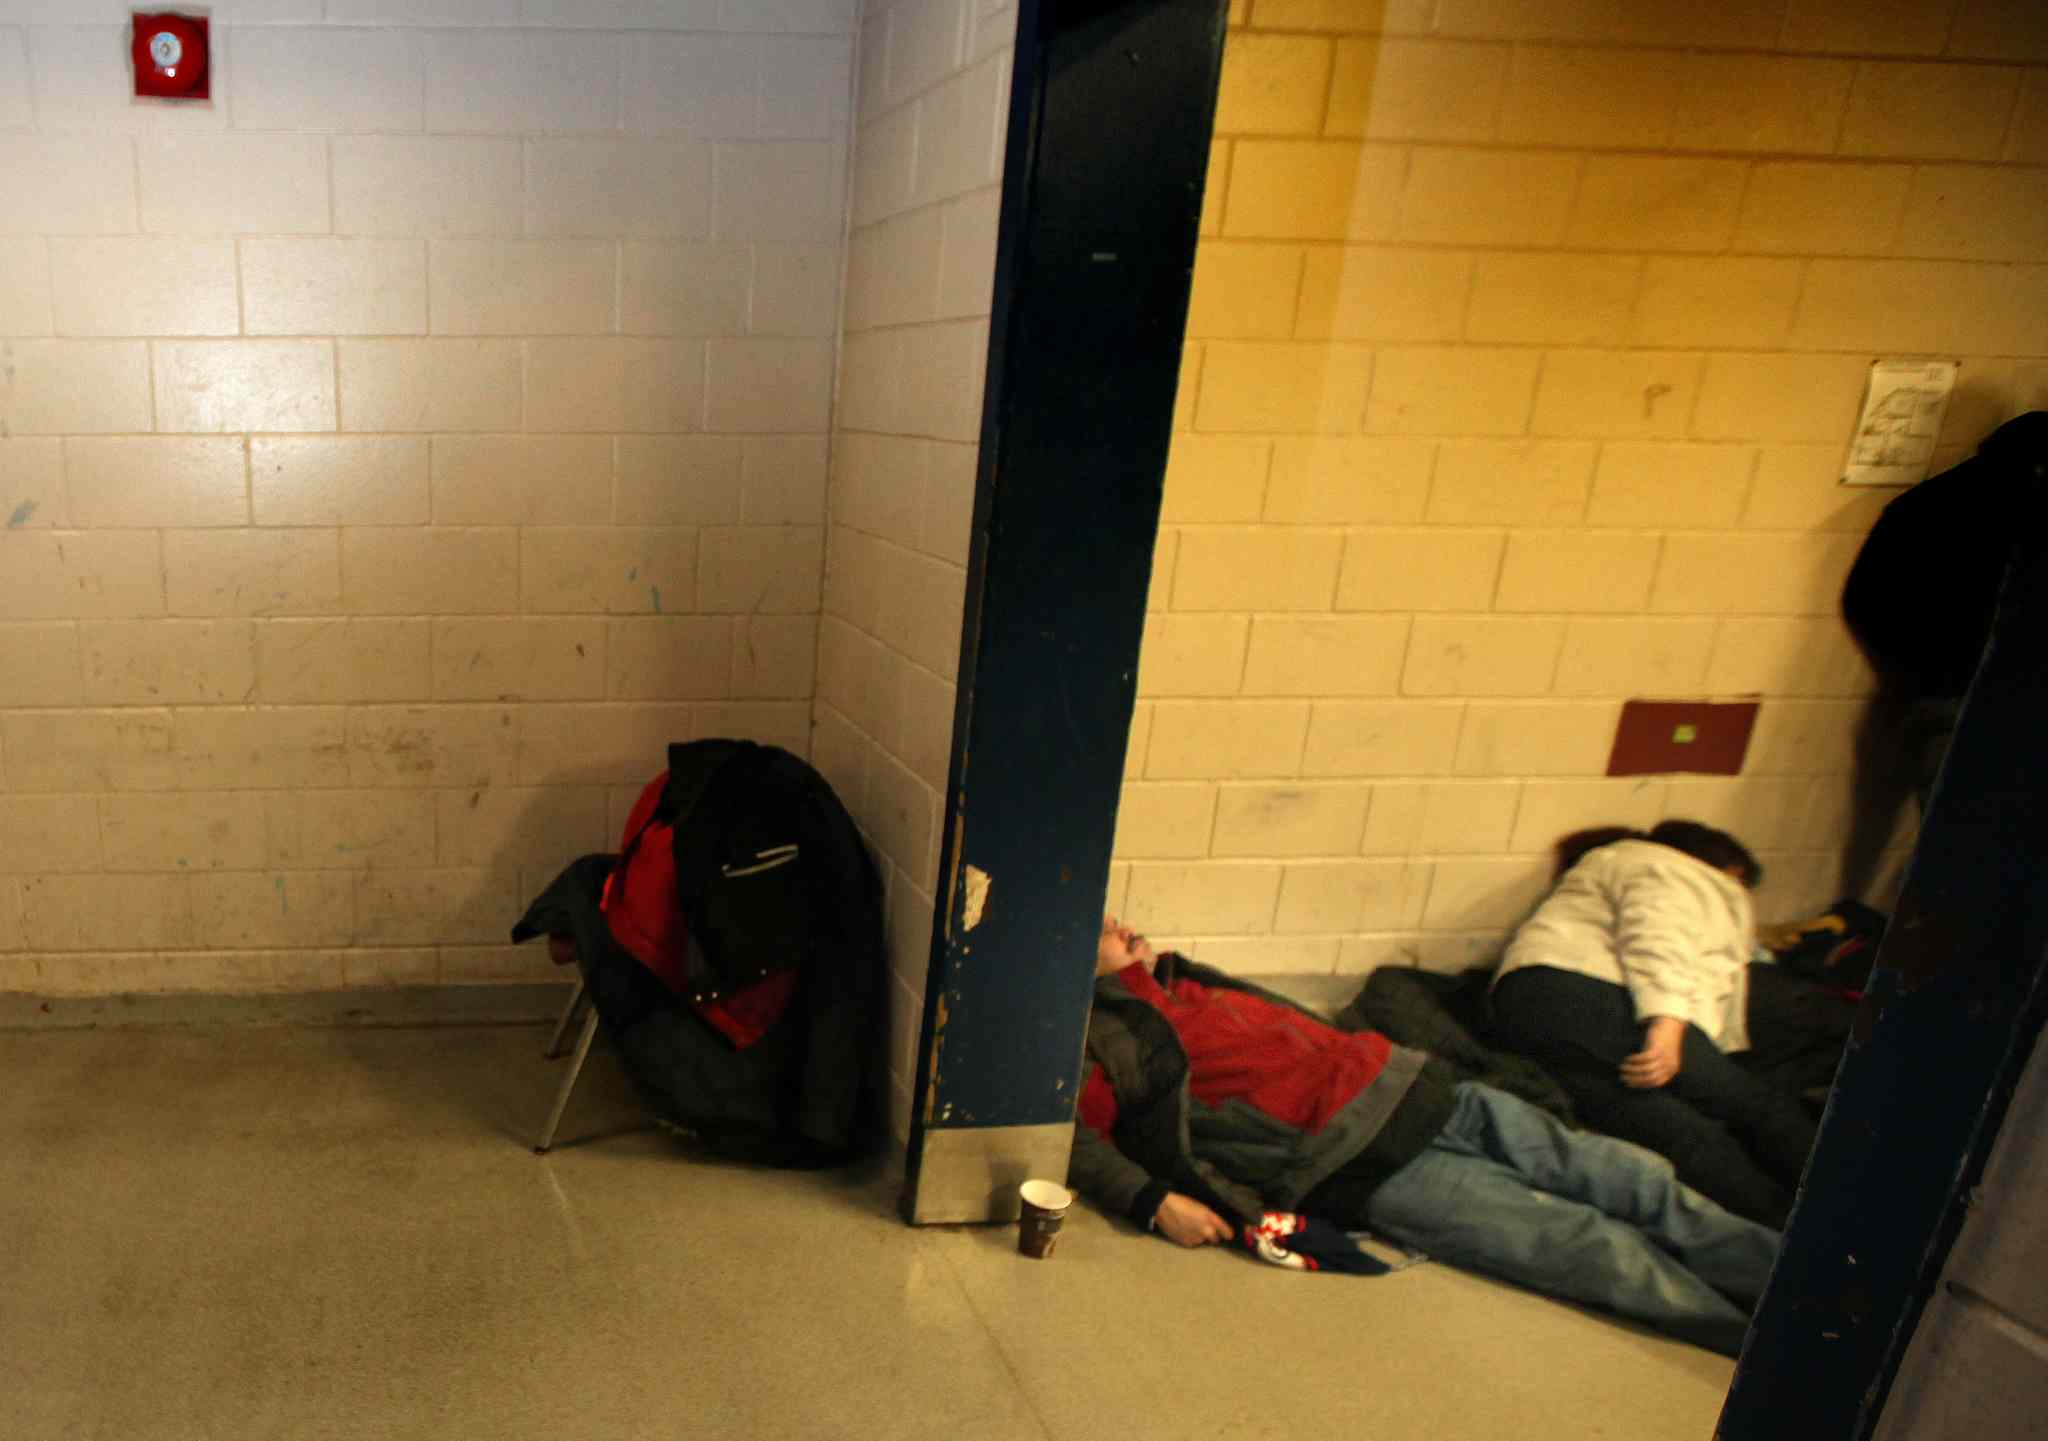 Clients wait in the Main Street Project for mats to be laid out on the floor to sleep on a cold January night in 2014.